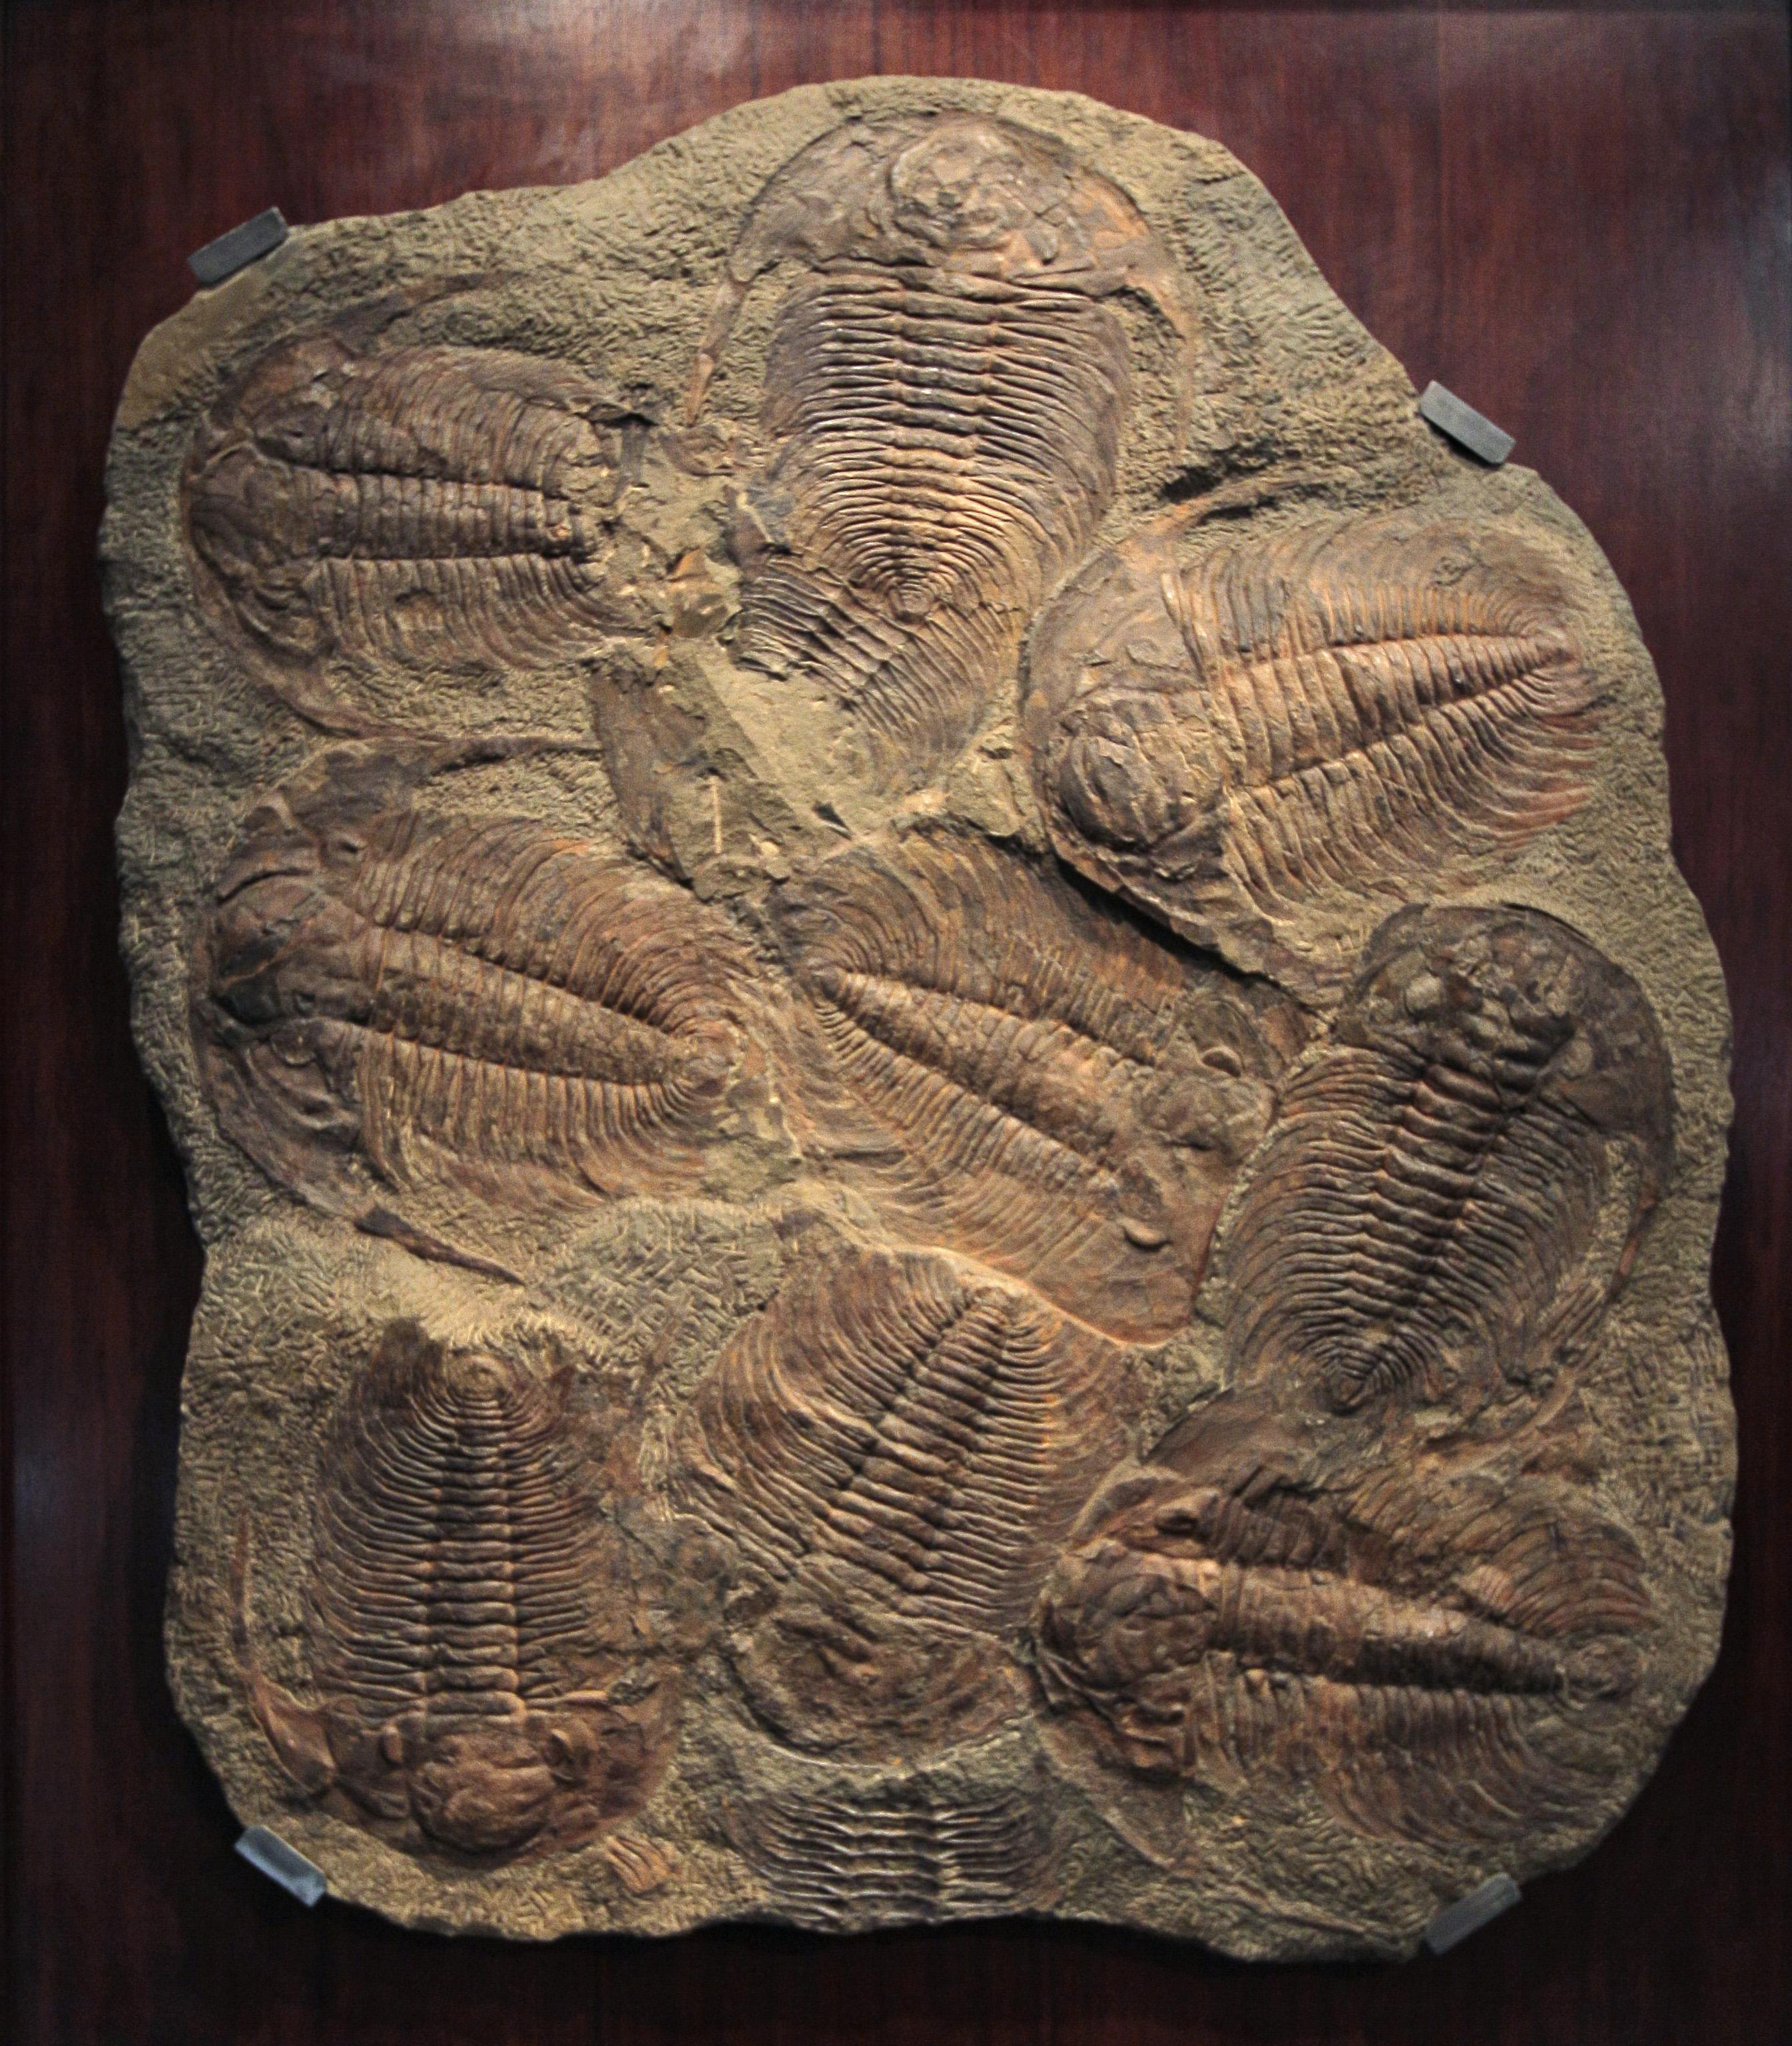 11-year-old finds 475-million-year-old Trilobite fossil in Tennessee